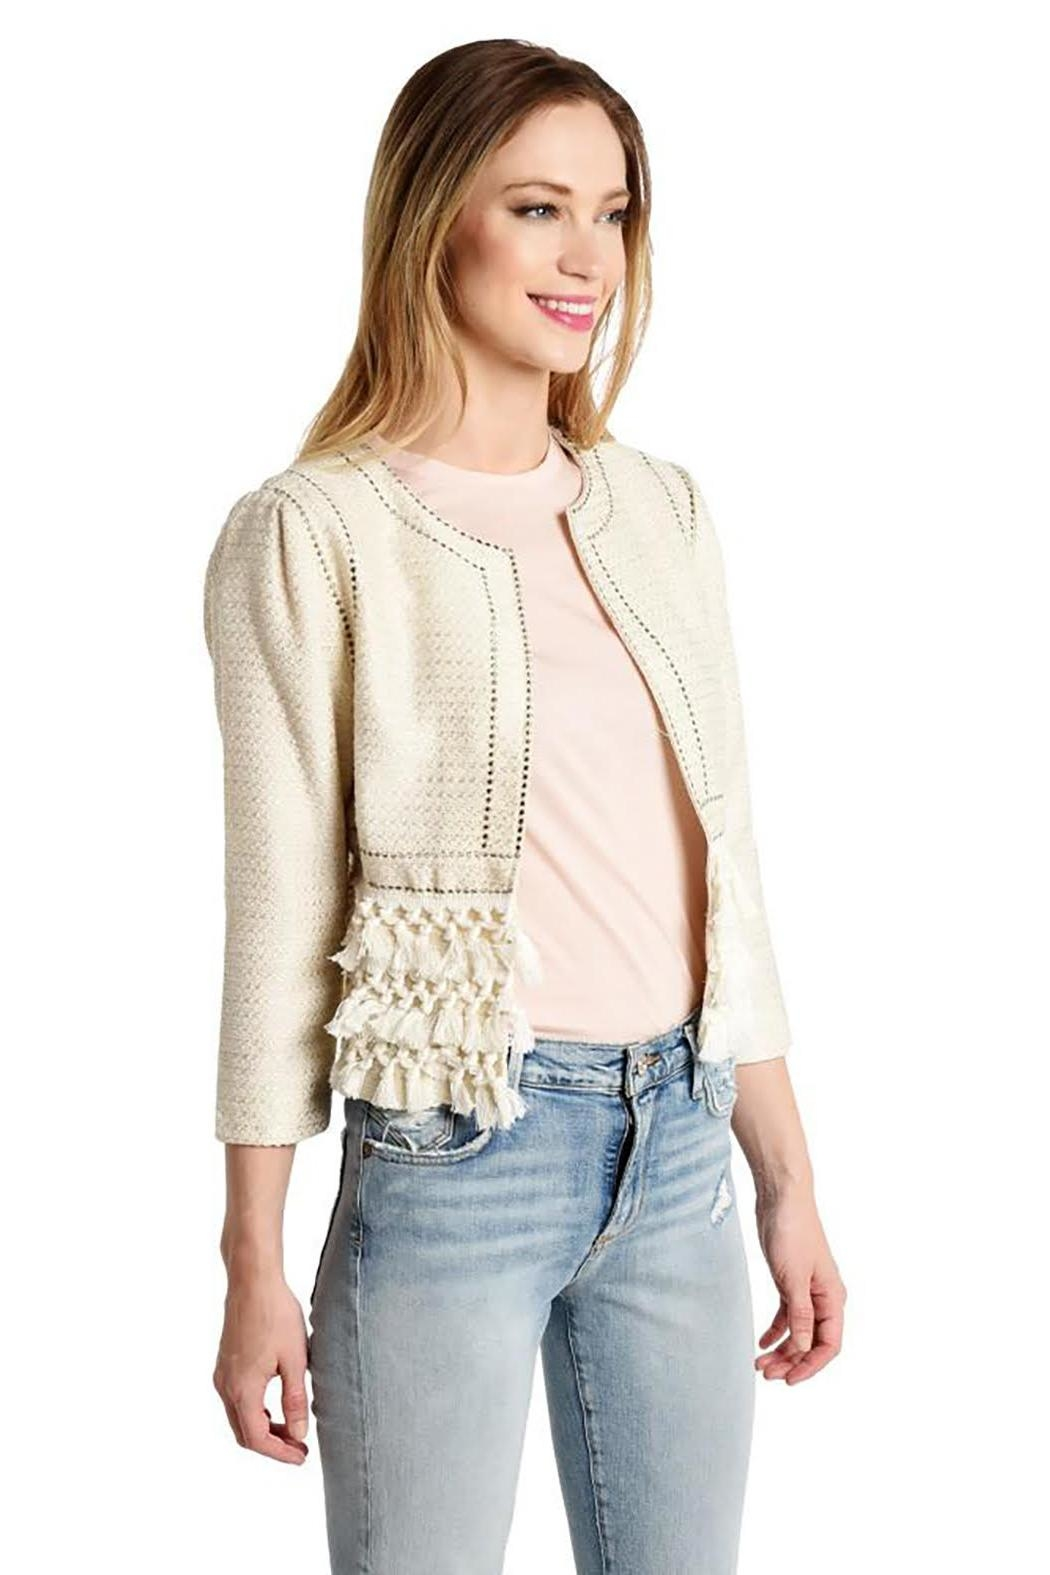 Cupcakes and Cashmere Tassel Knit Jacket - Main Image